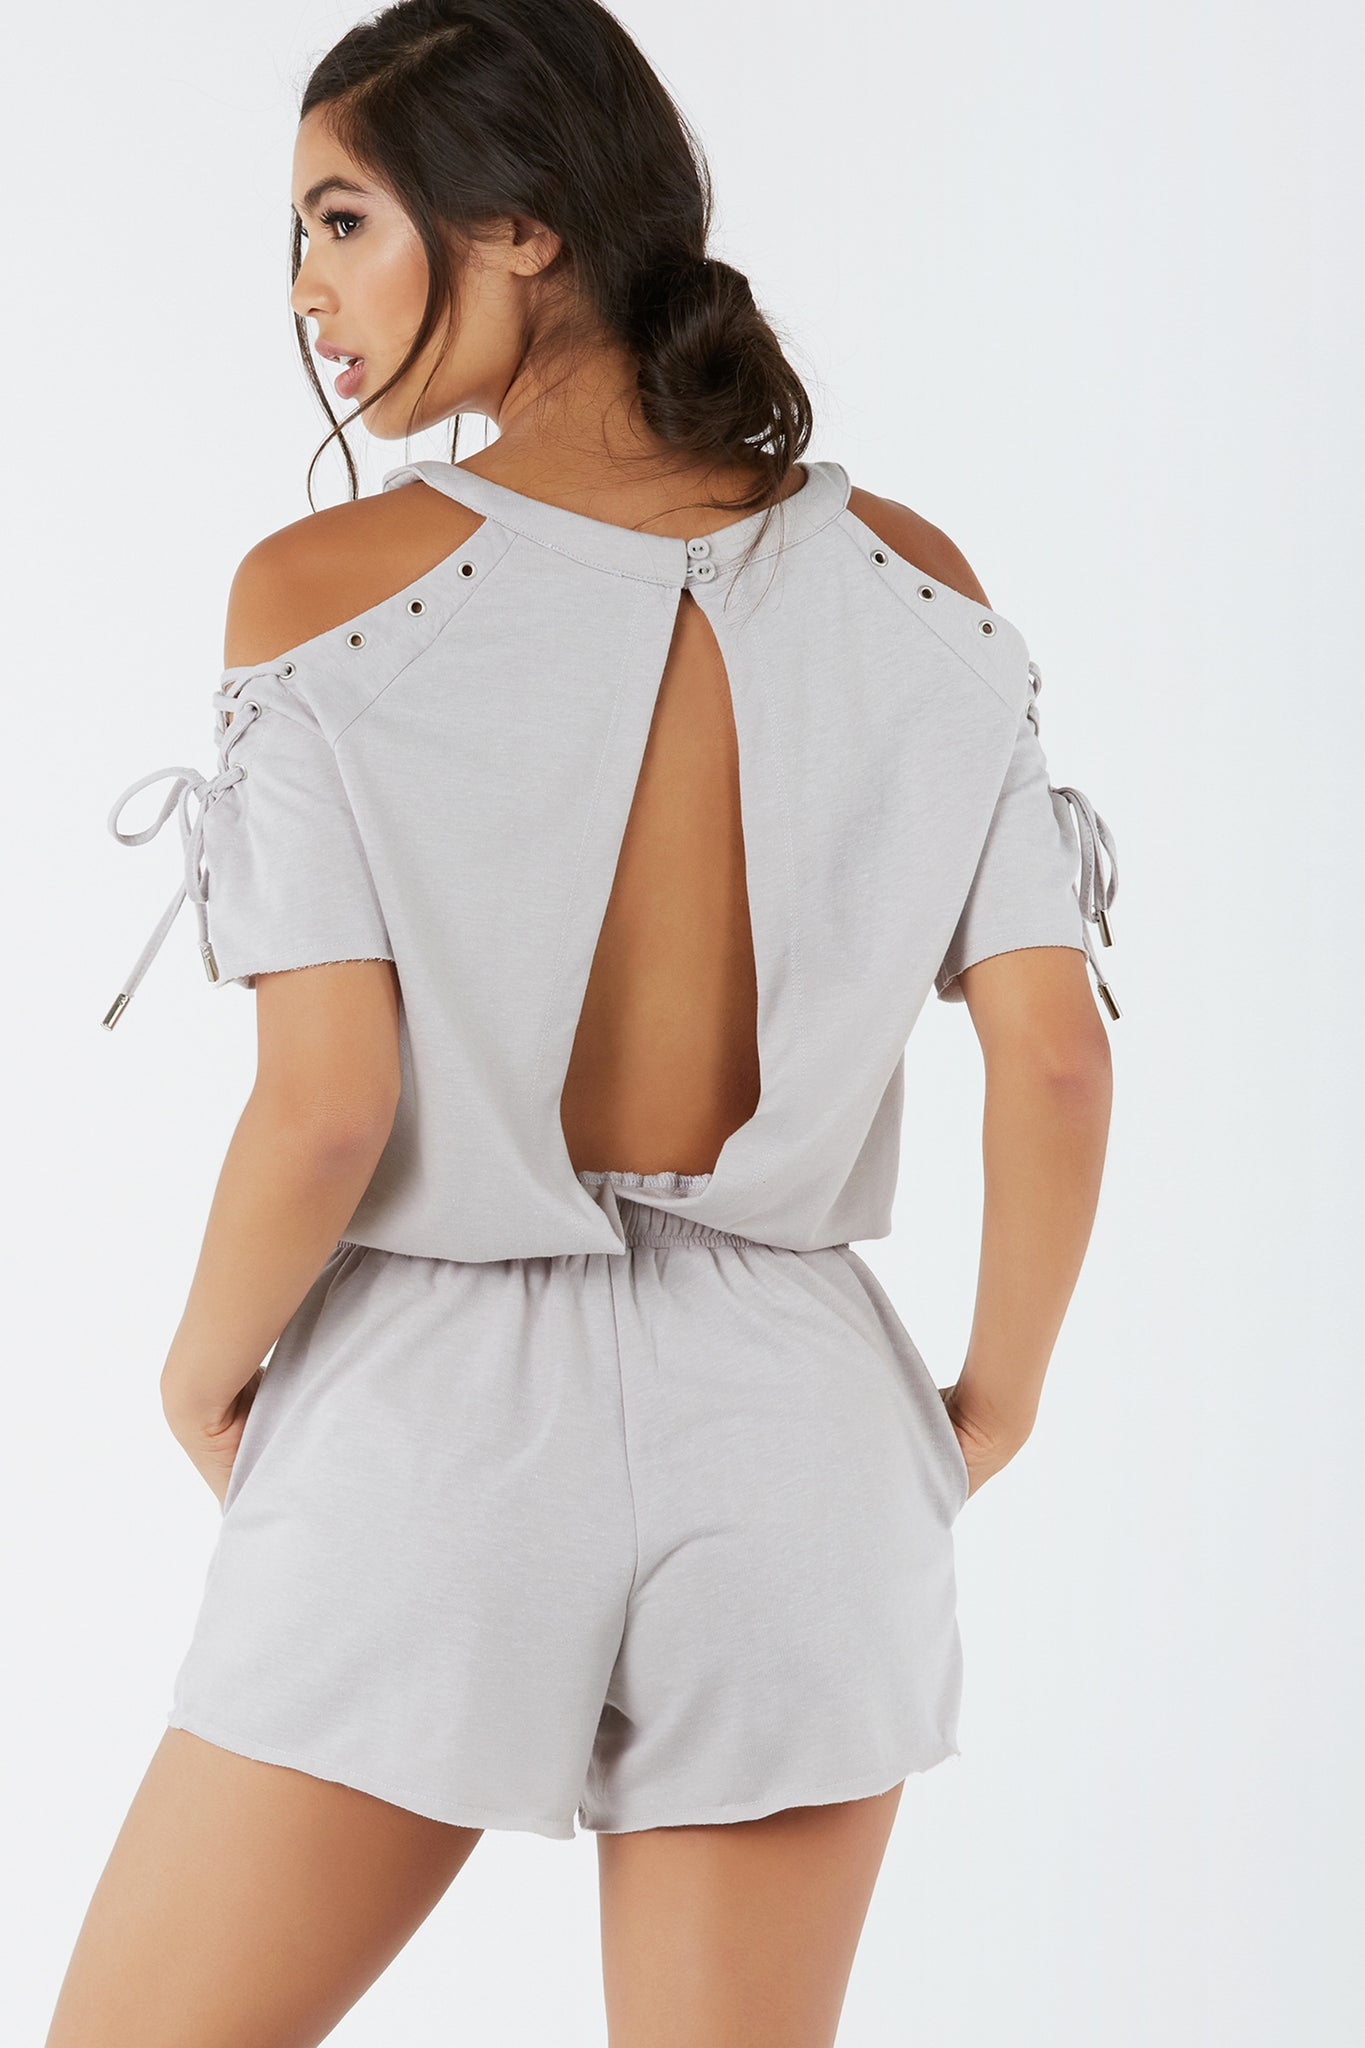 Soft cold shoulder romper with trendy cut outs. Eyelet detailing with lace up design at shoulder. Side pockets with drawstring at waist.